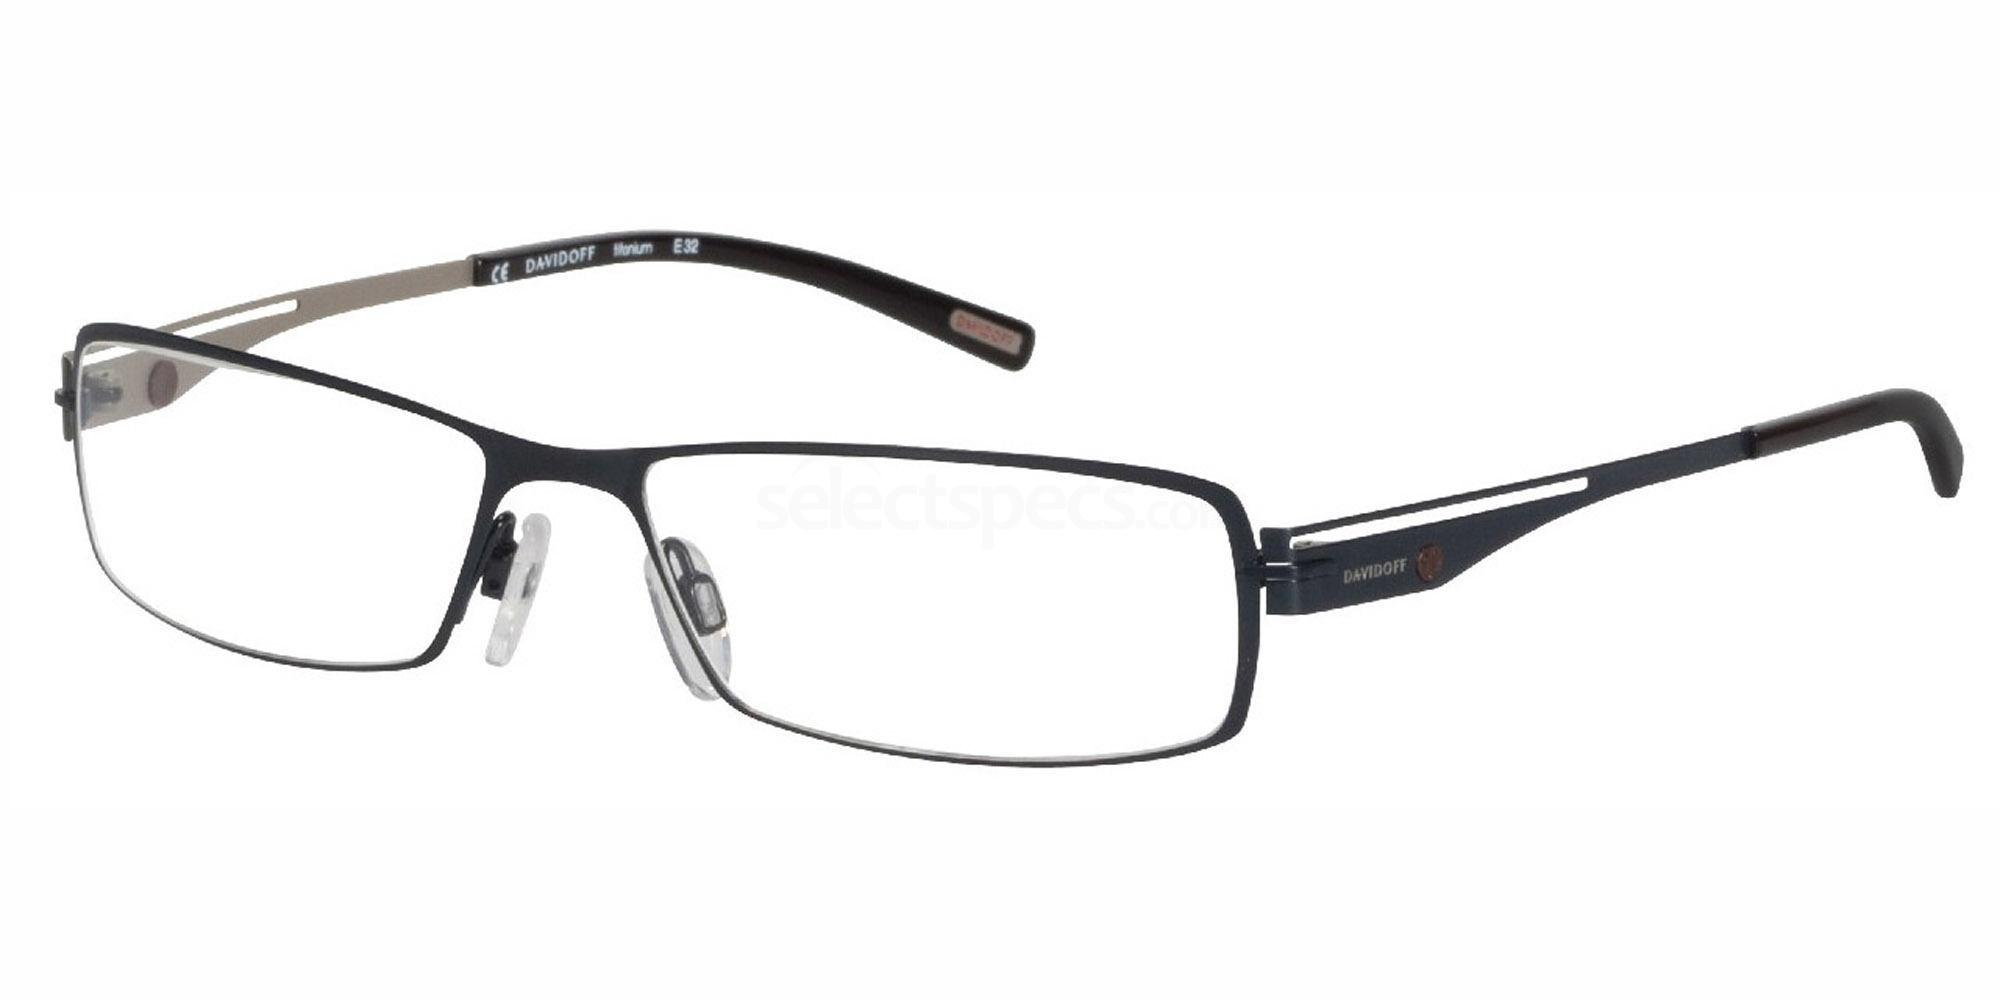 453 95079 Glasses, DAVIDOFF Eyewear